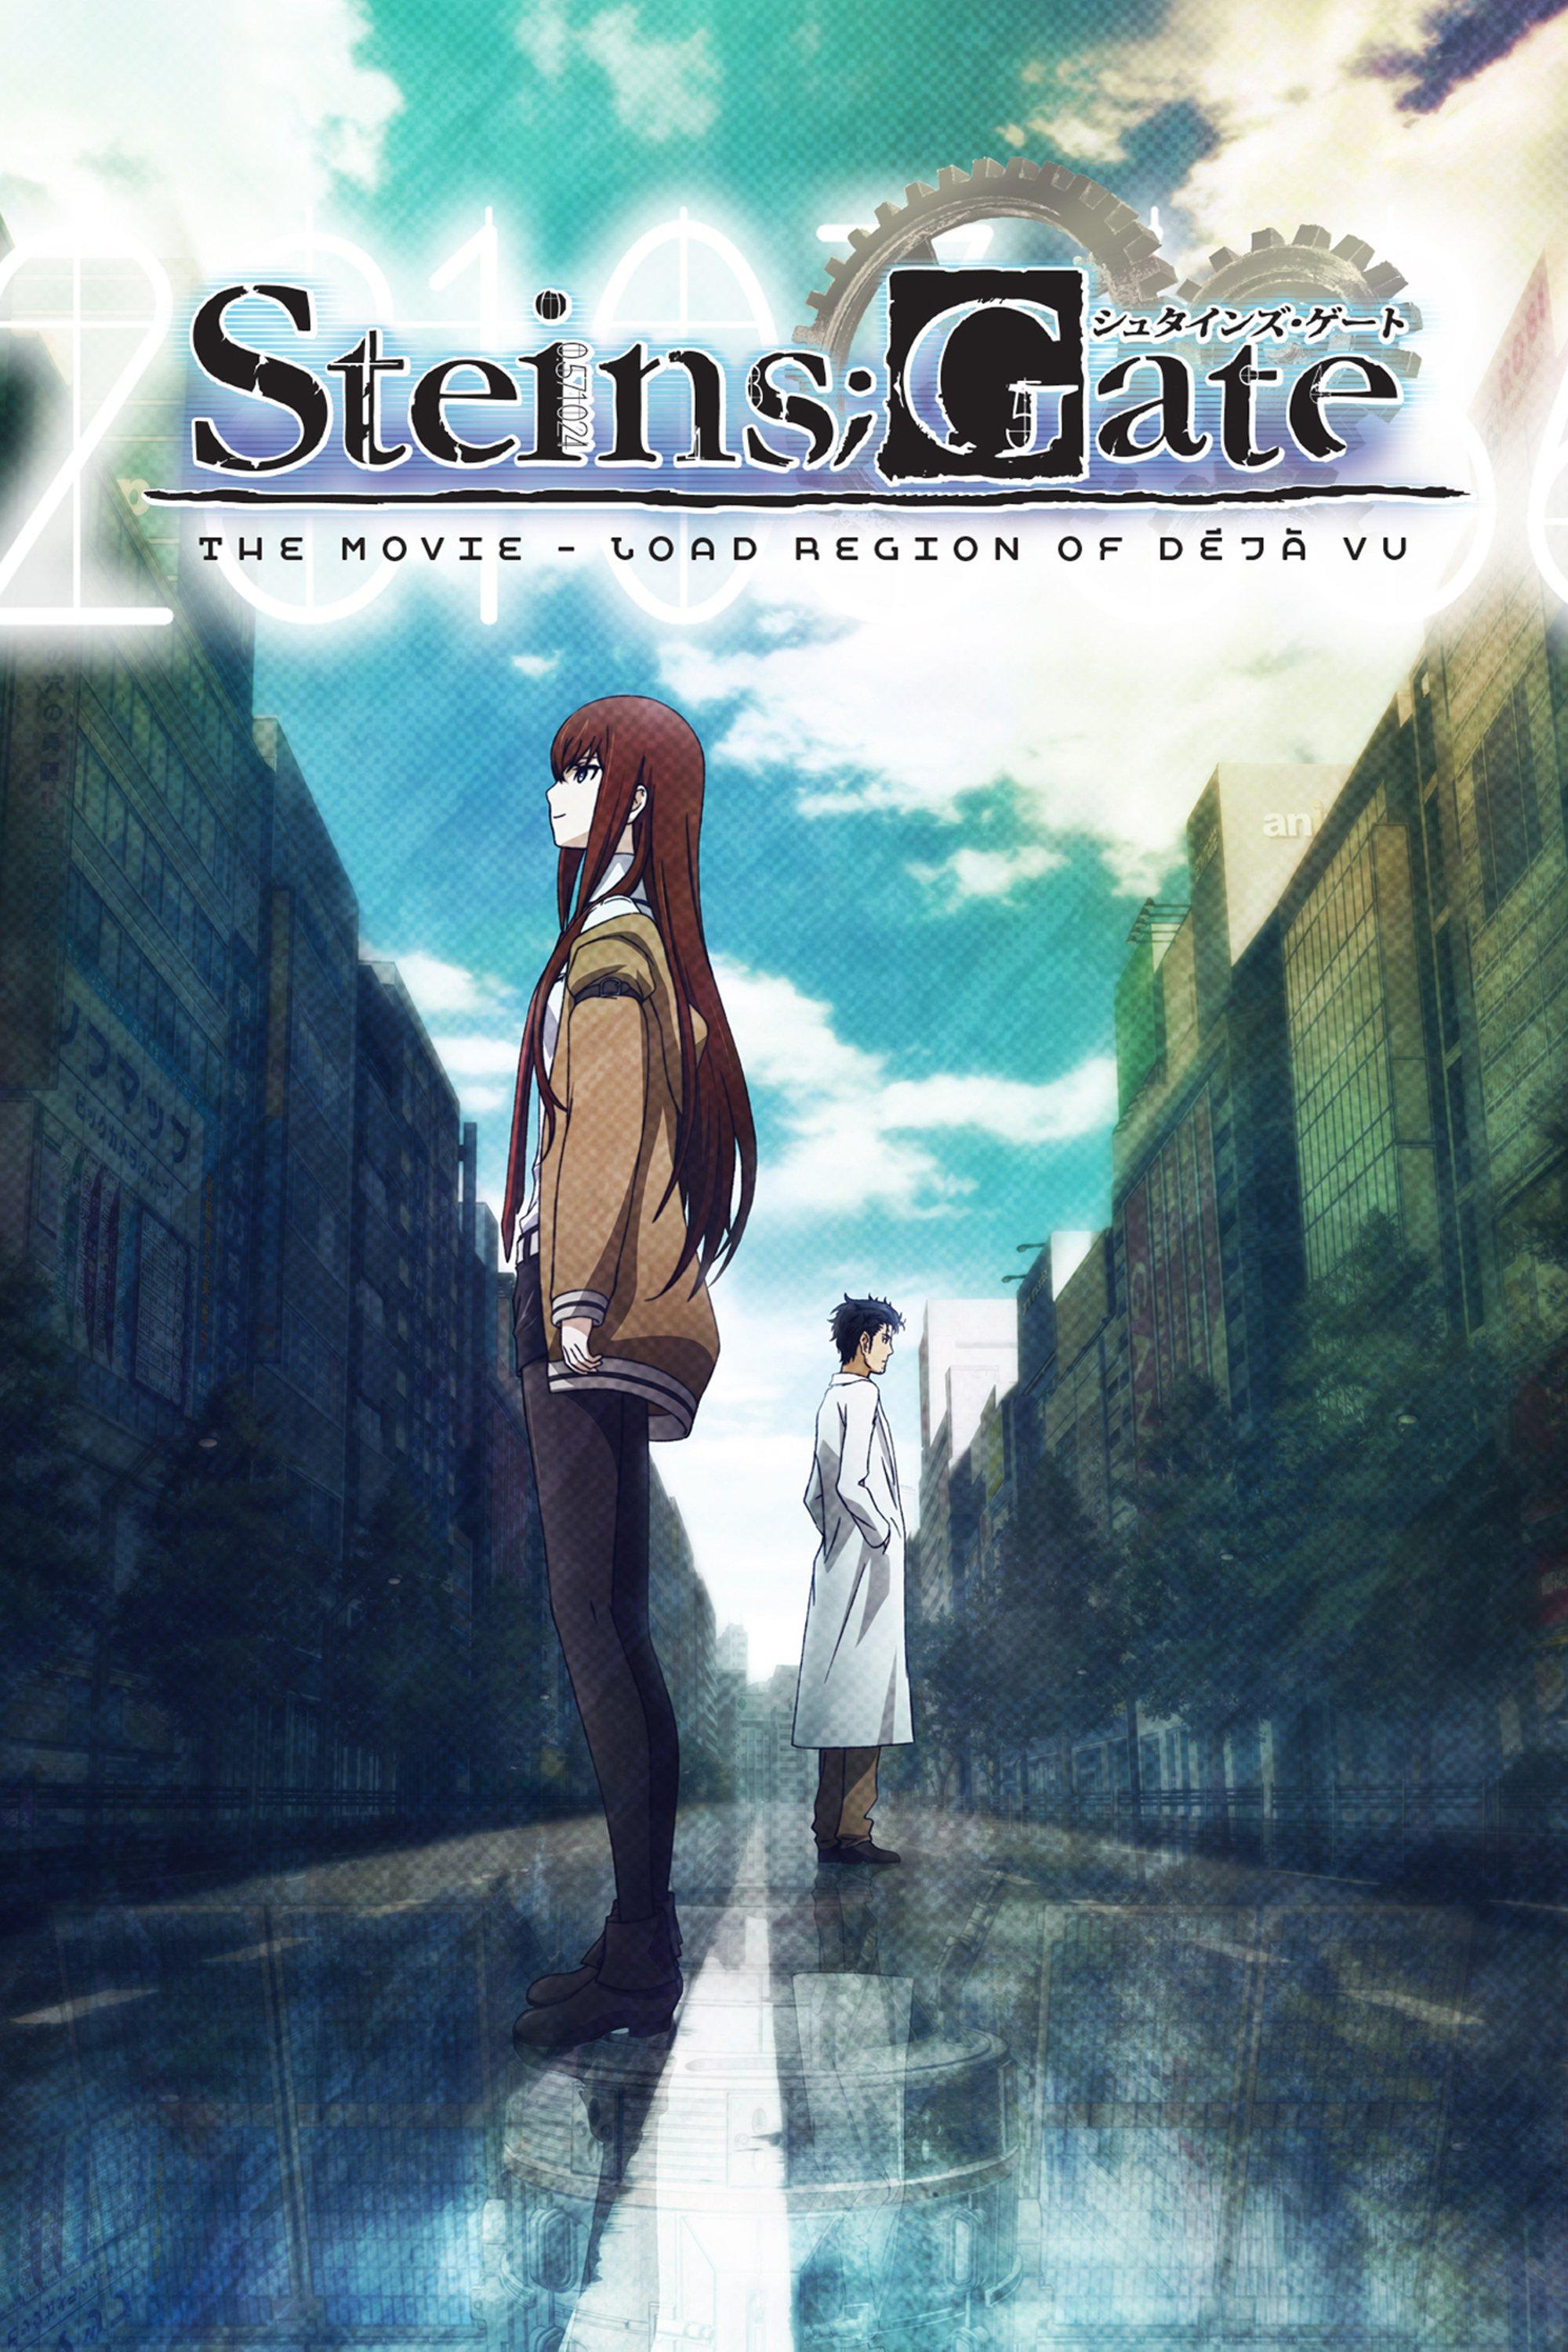 Steins;Gate: The Movie - Load Region of Déjà vu | Steins;Gate Wiki ...